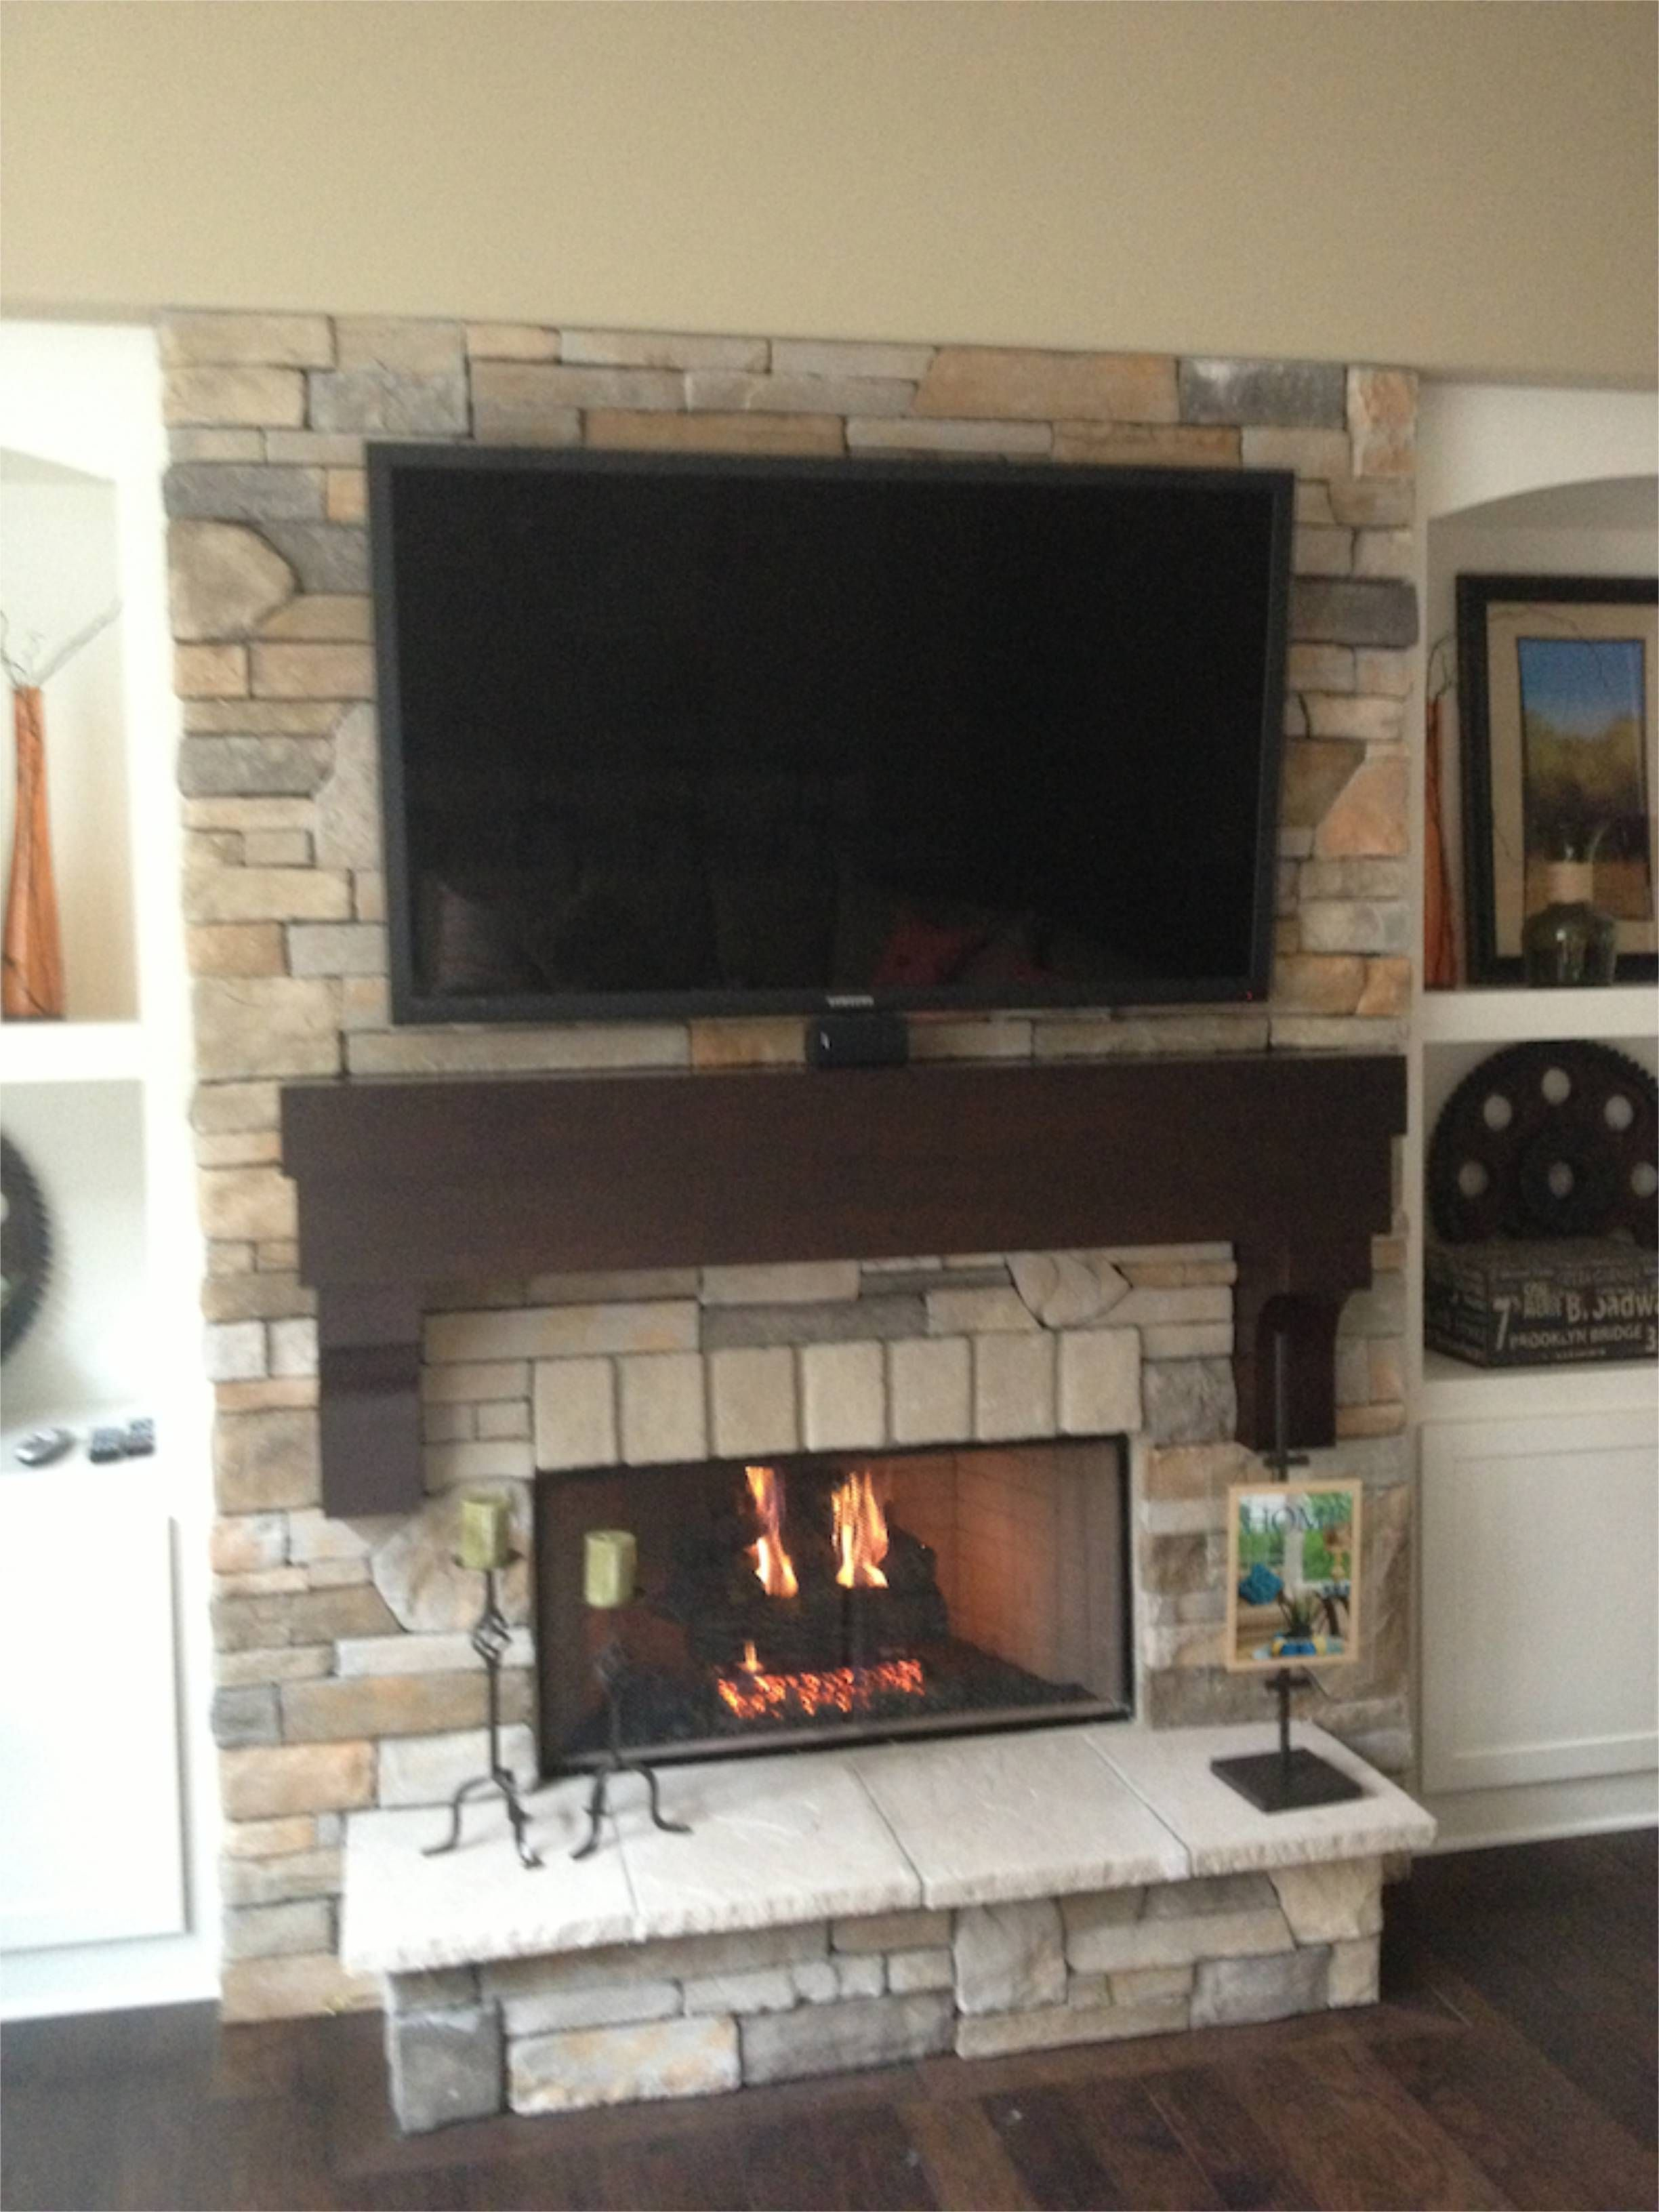 gas log fireplace insert fireplace company fireplace inserts rh pinterest com fireplace log inserts gas fireplace log inserts electric